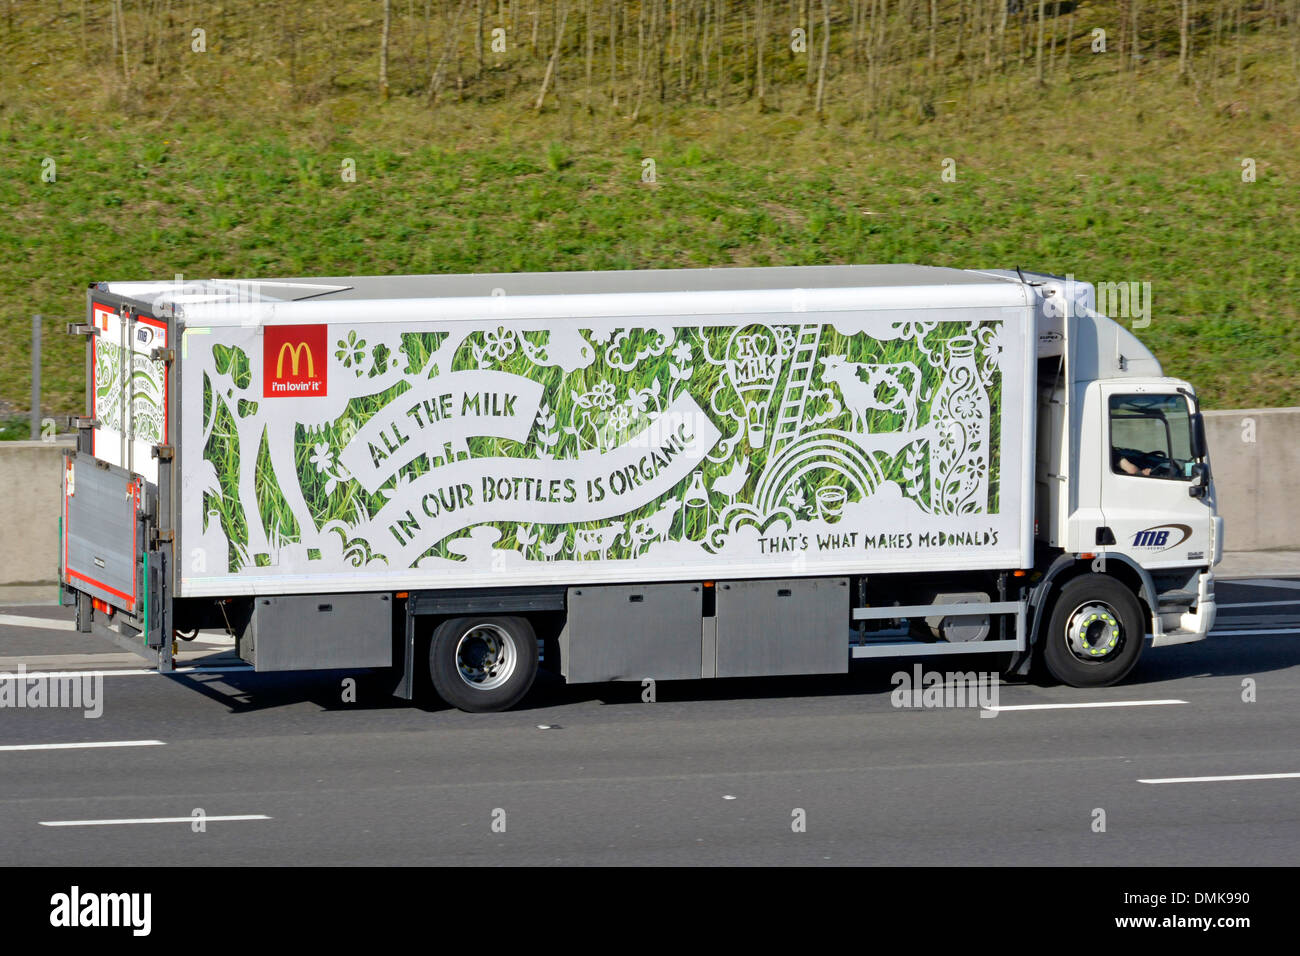 Mercedes European Delivery >> McDonalds delivery lorry with advertising for their organic milk in Stock Photo, Royalty Free ...